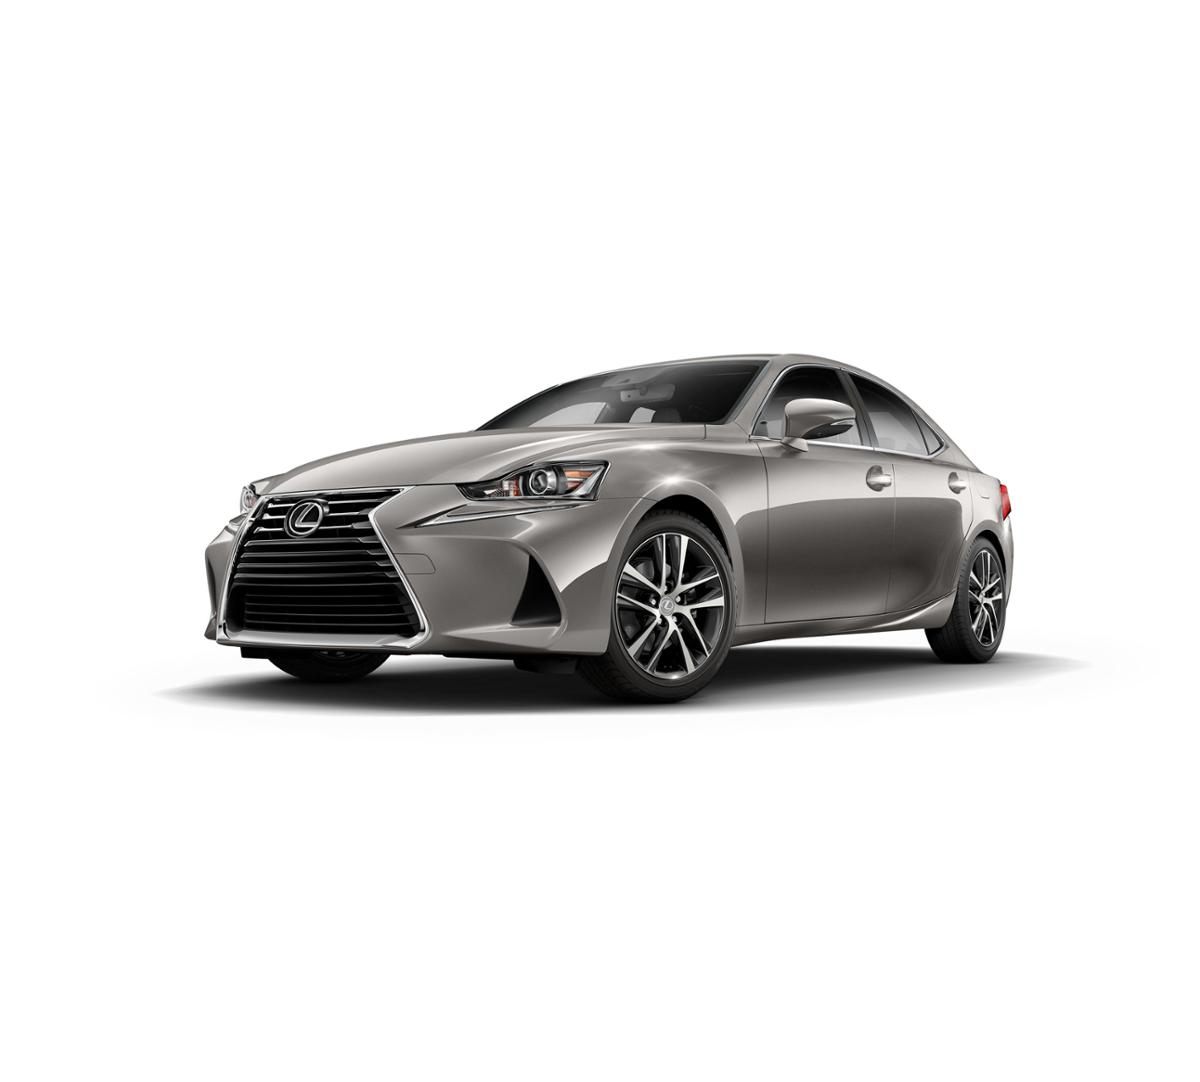 2018 Lexus IS 300 Vehicle Photo in Houston, TX 77074